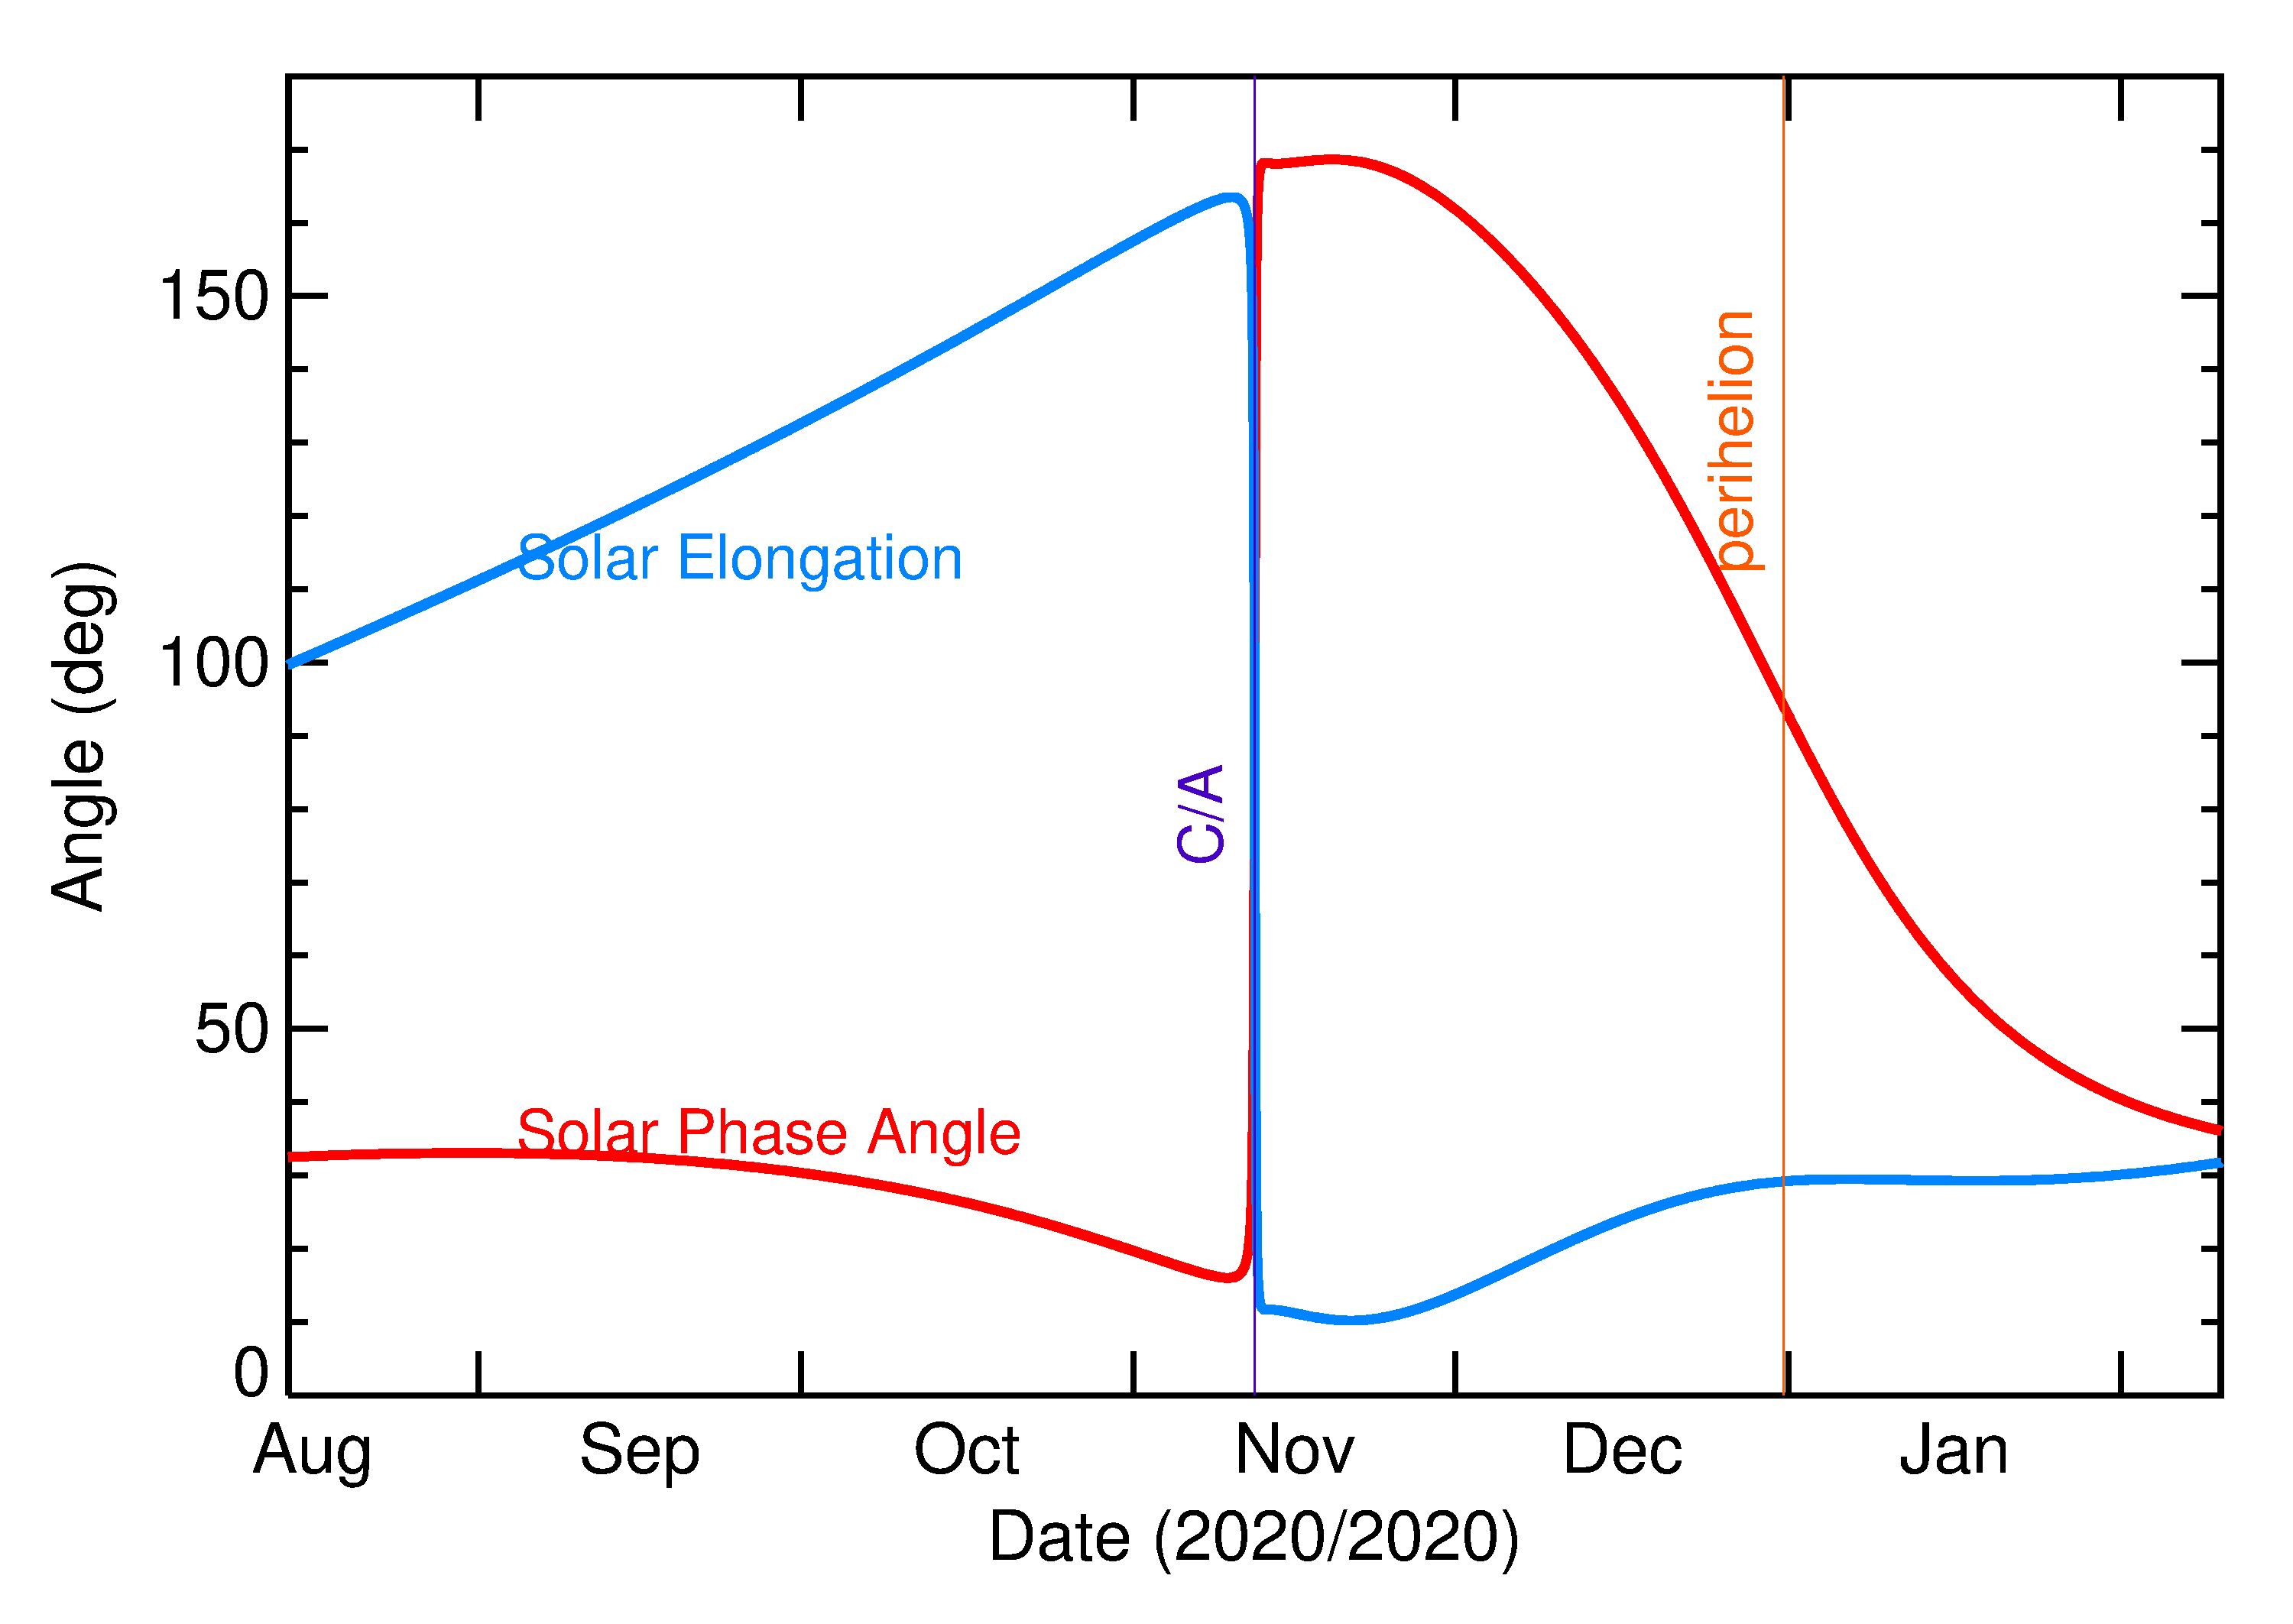 Solar Elongation and Solar Phase Angle of 2020 VP1 in the months around closest approach